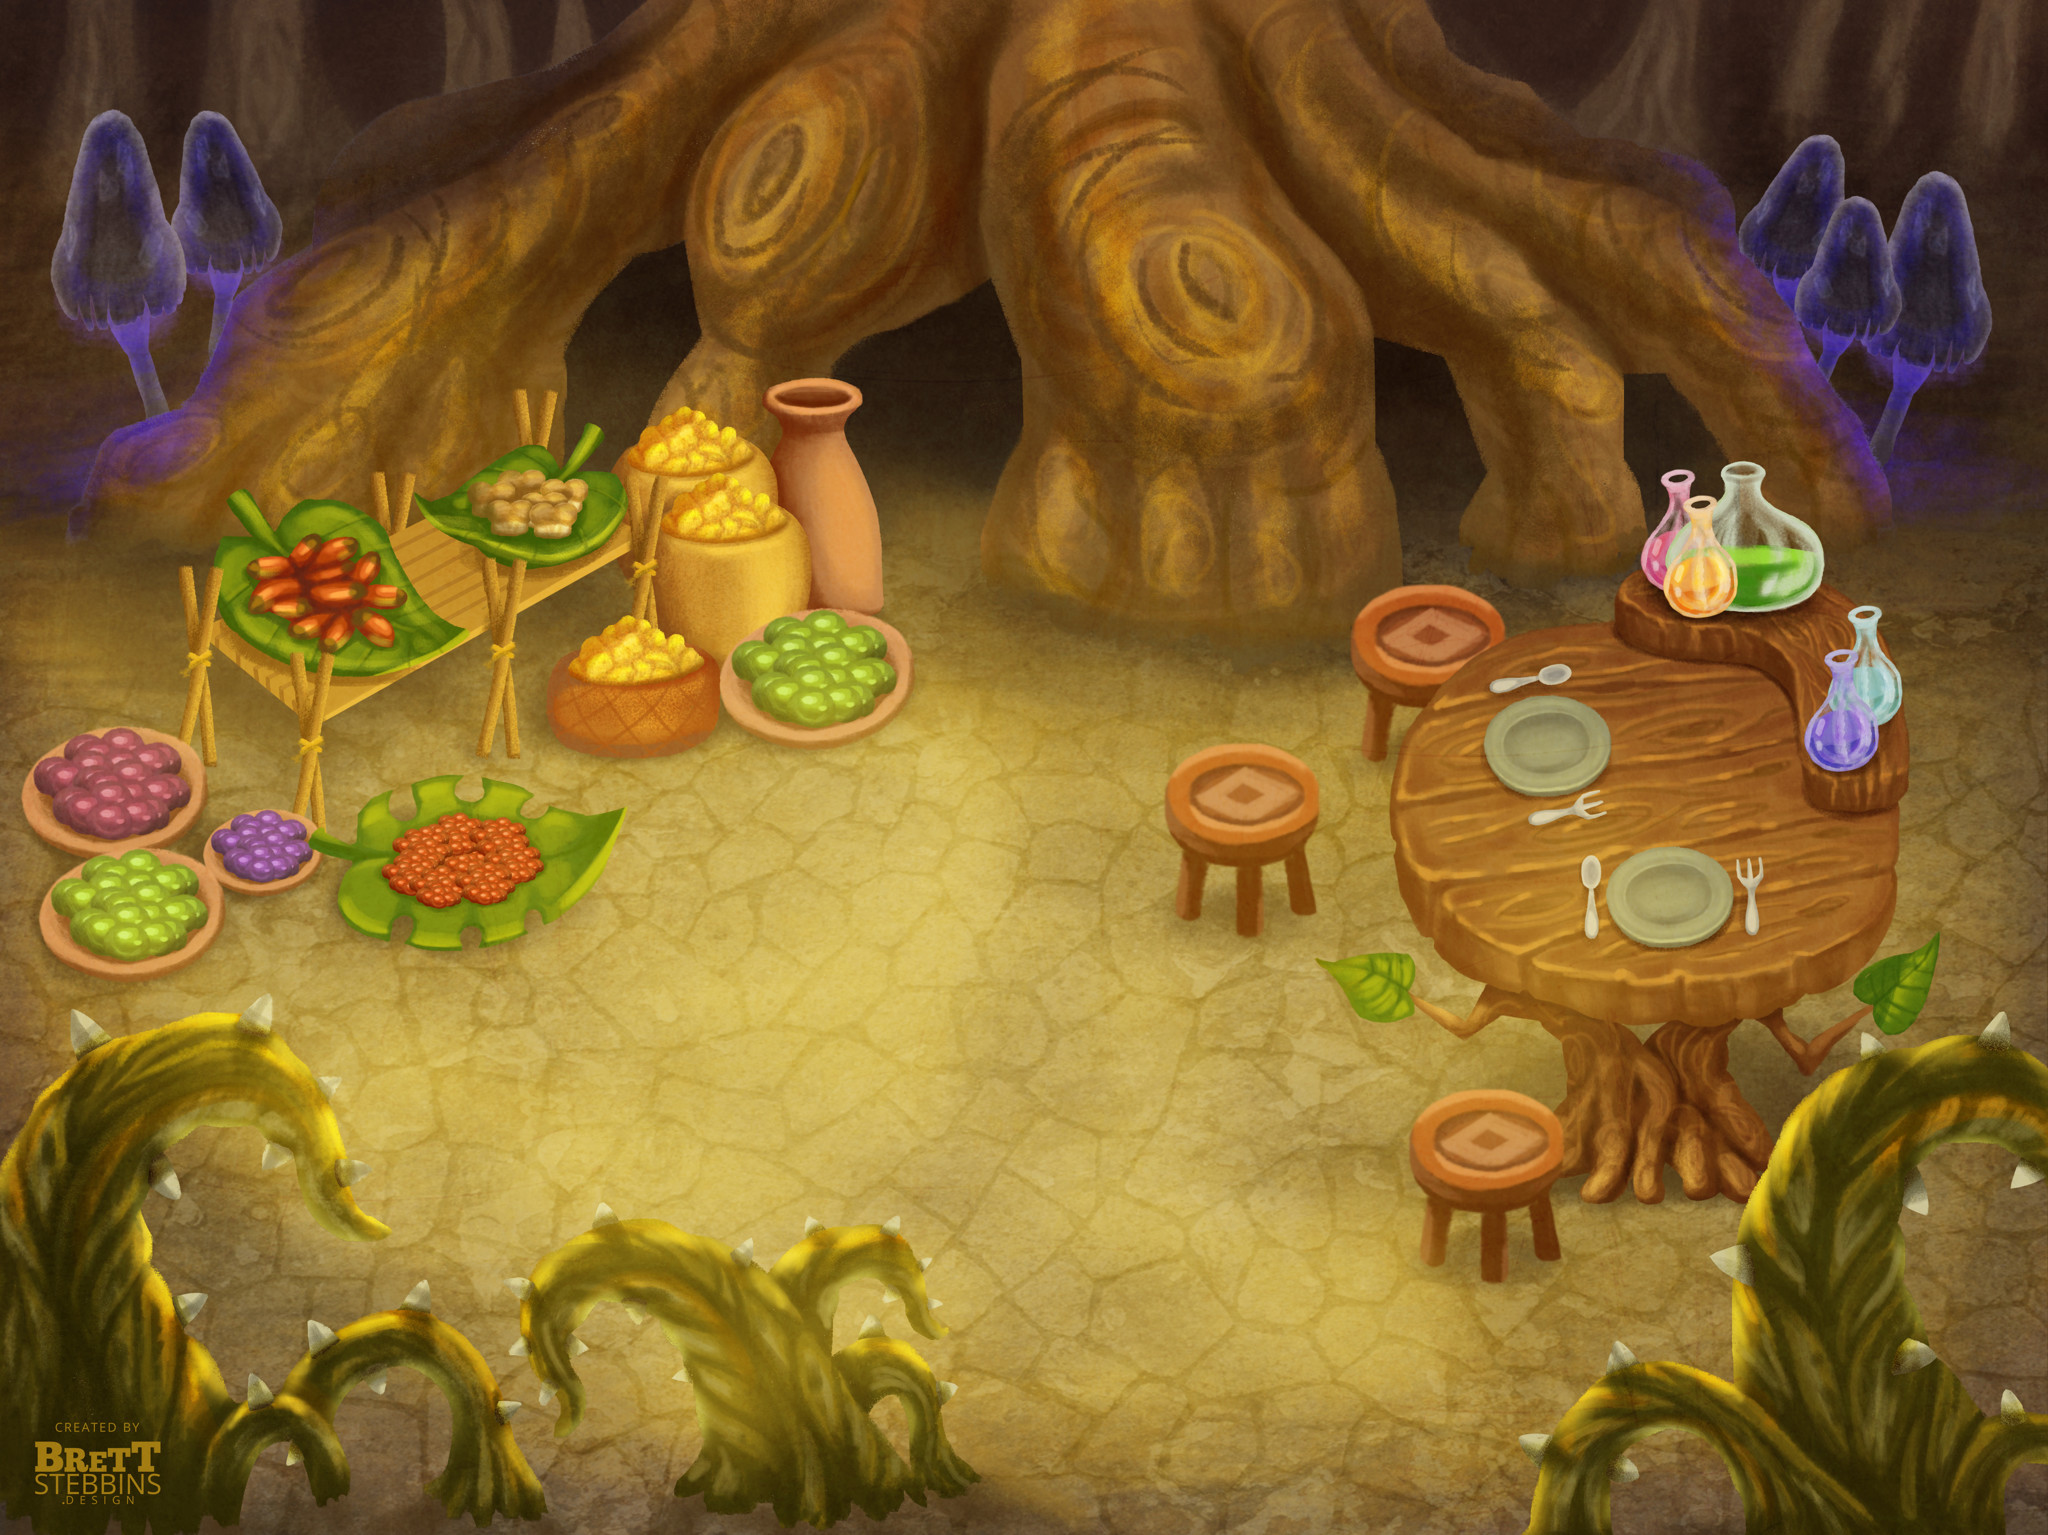 Final Concept Art - Common Eating Area and Marketplace